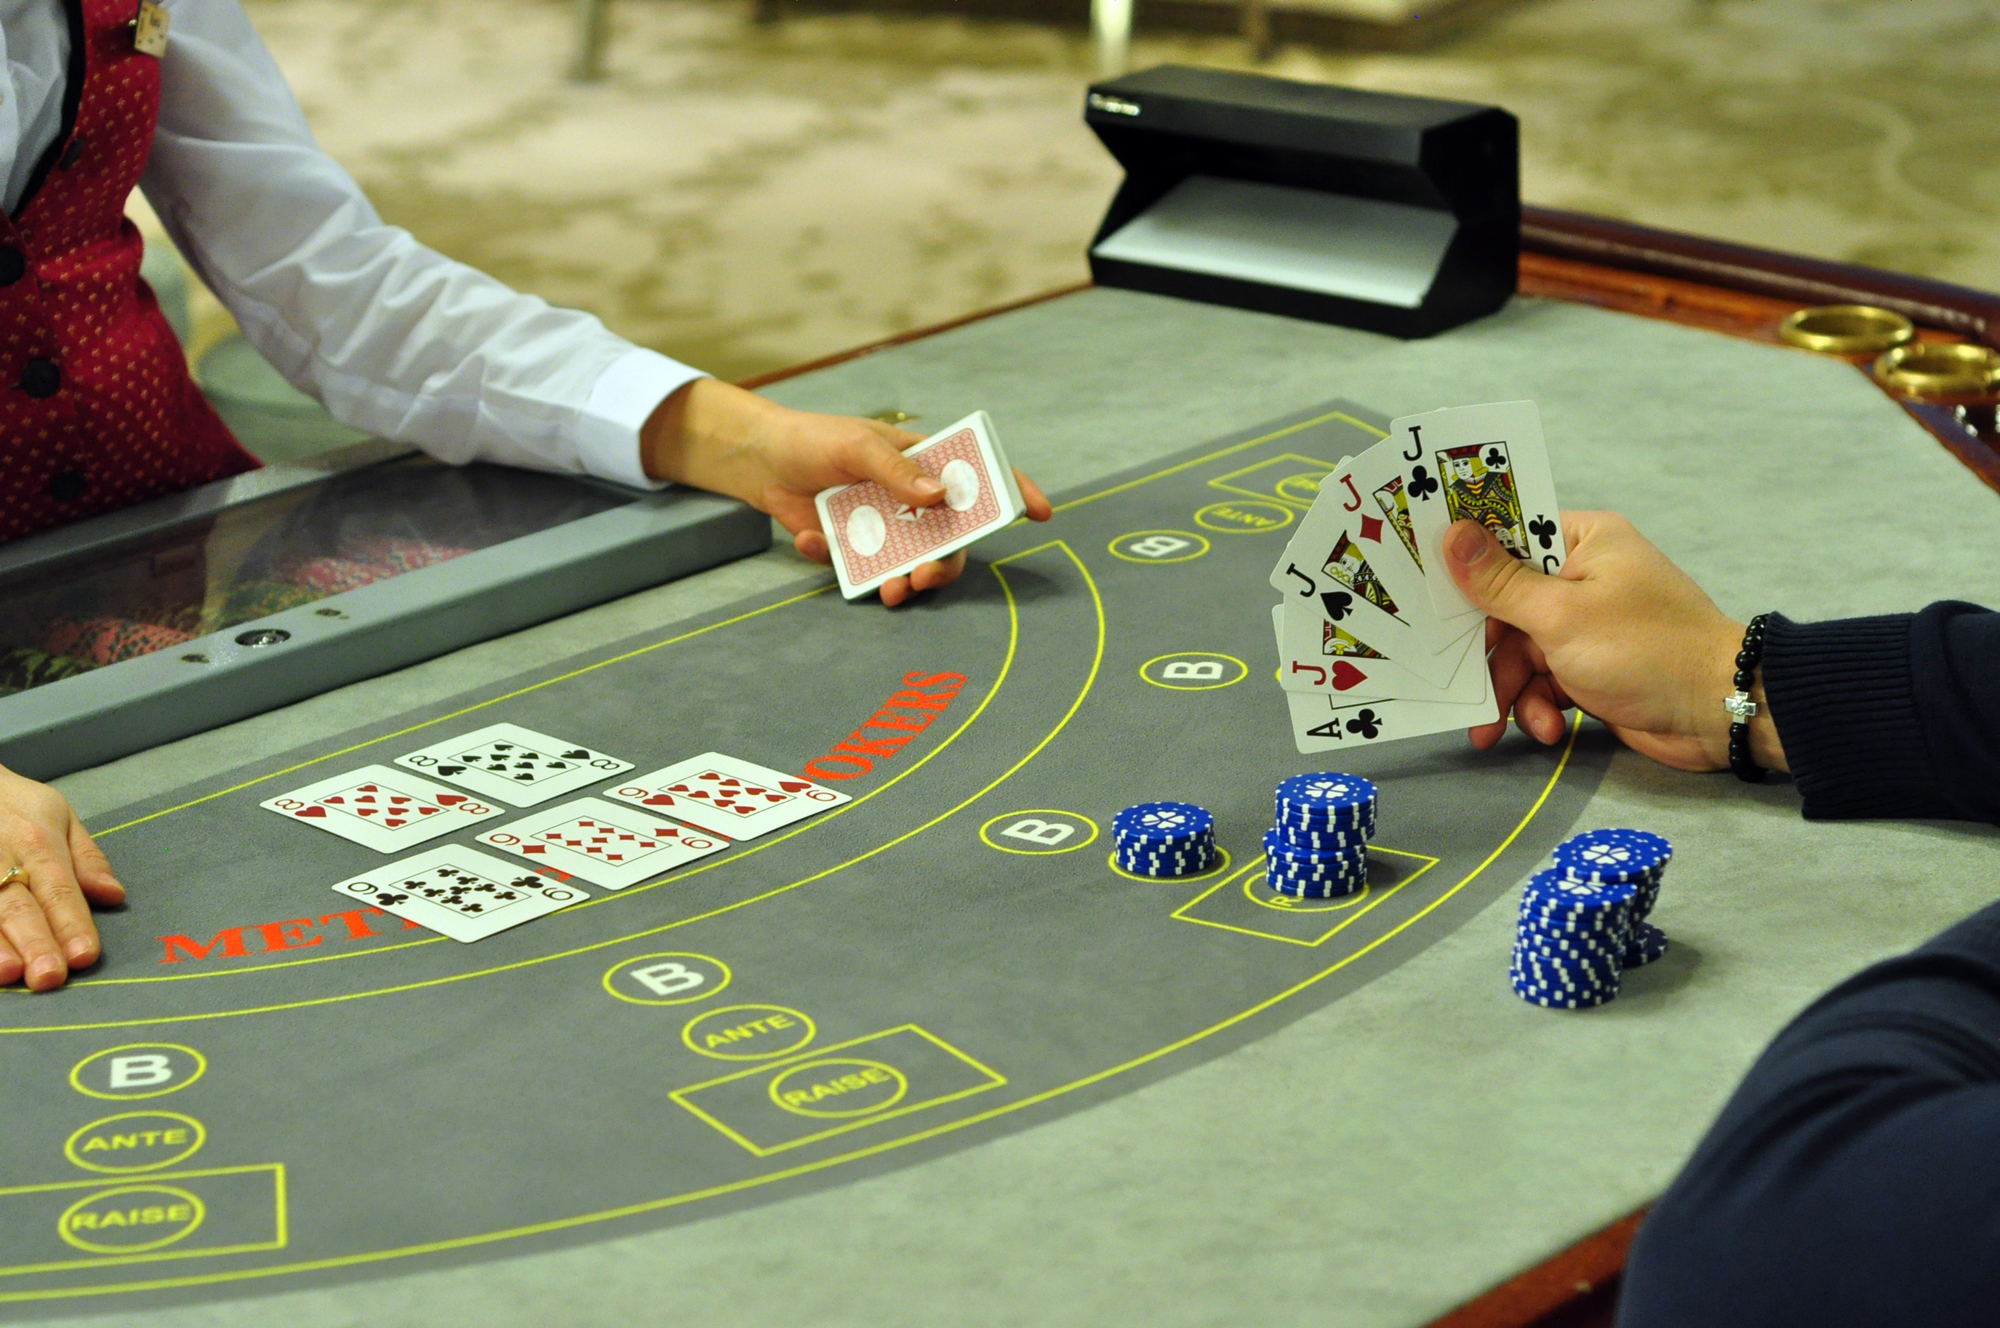 How do you order an enjoyable poker night?